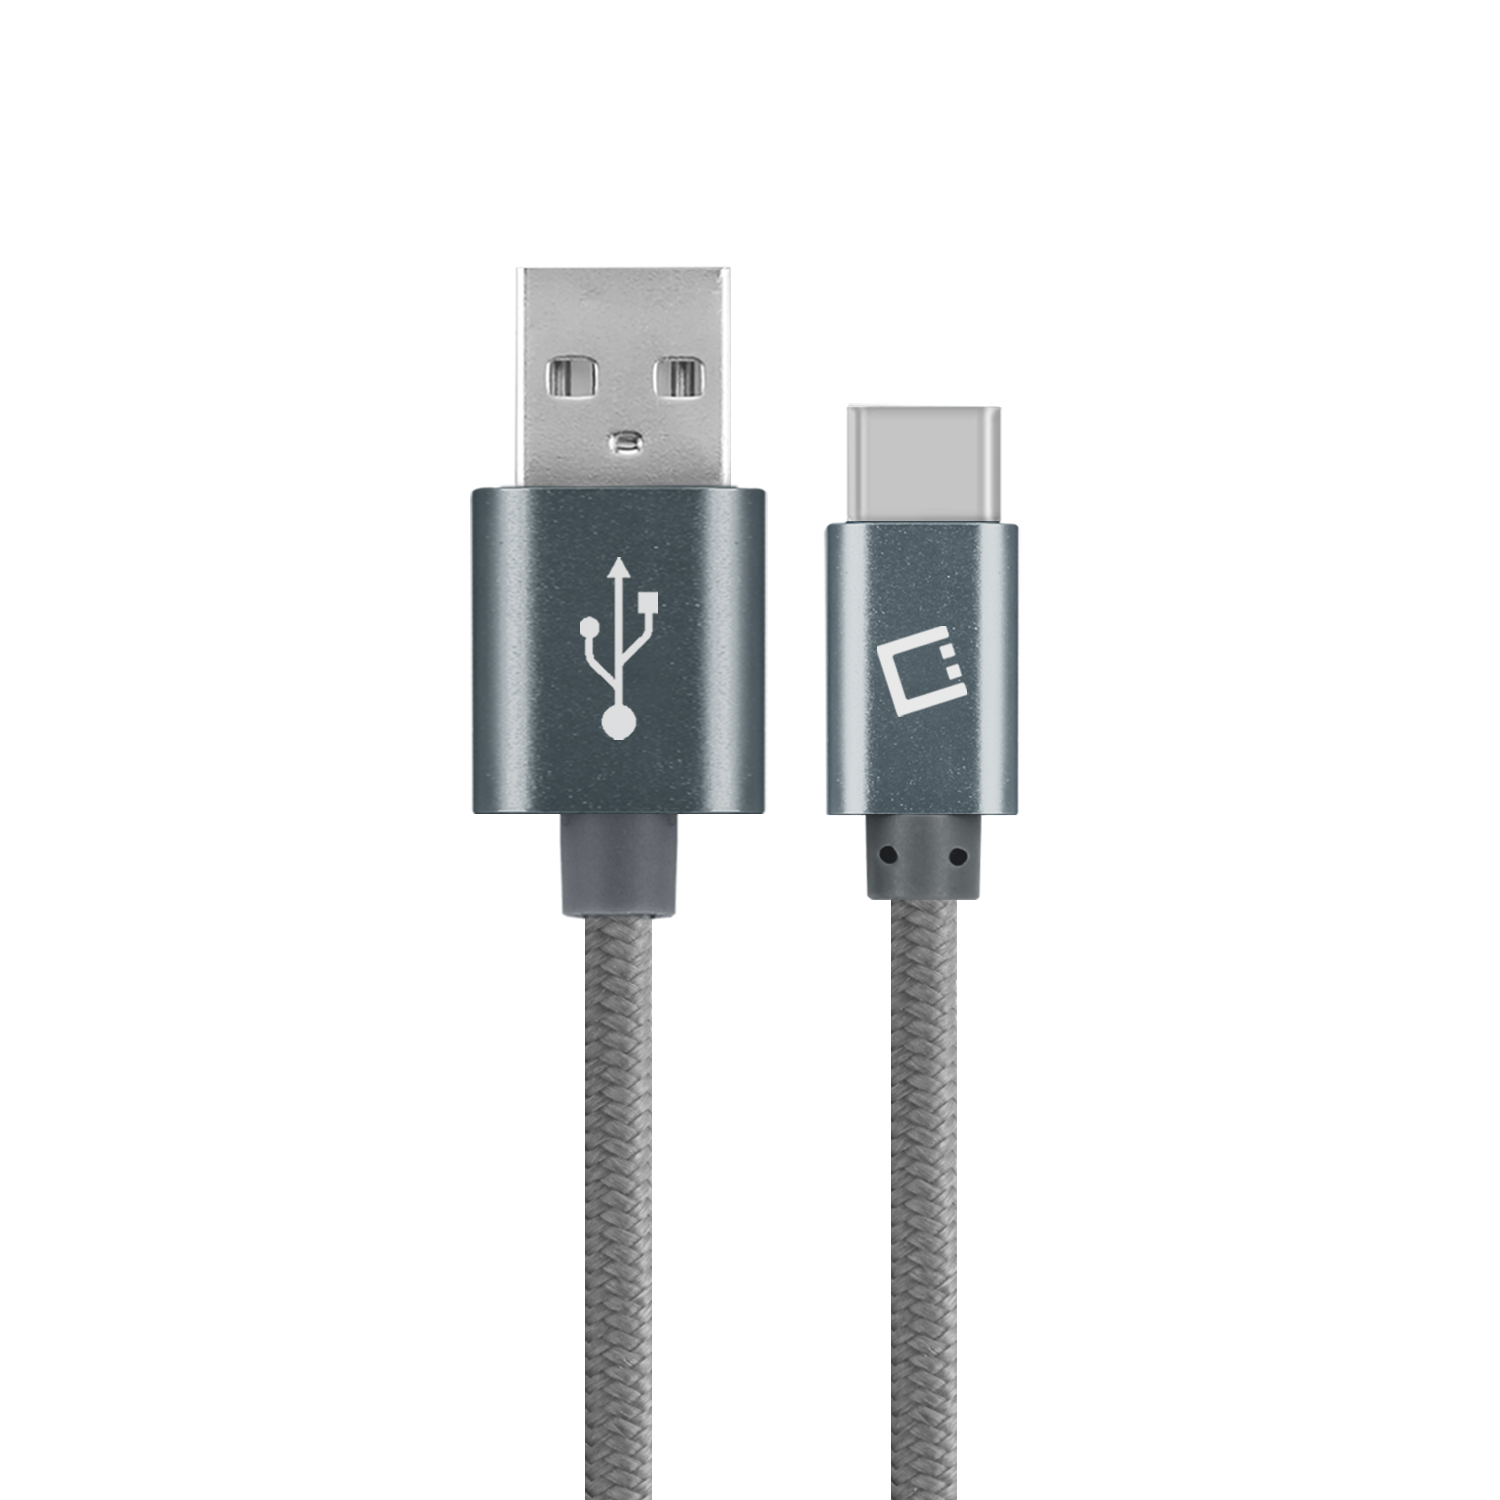 Samsung Galaxy XCover FieldPro USB Type-C To Type-A Braided Data Power Cable Grey 10ft Braided